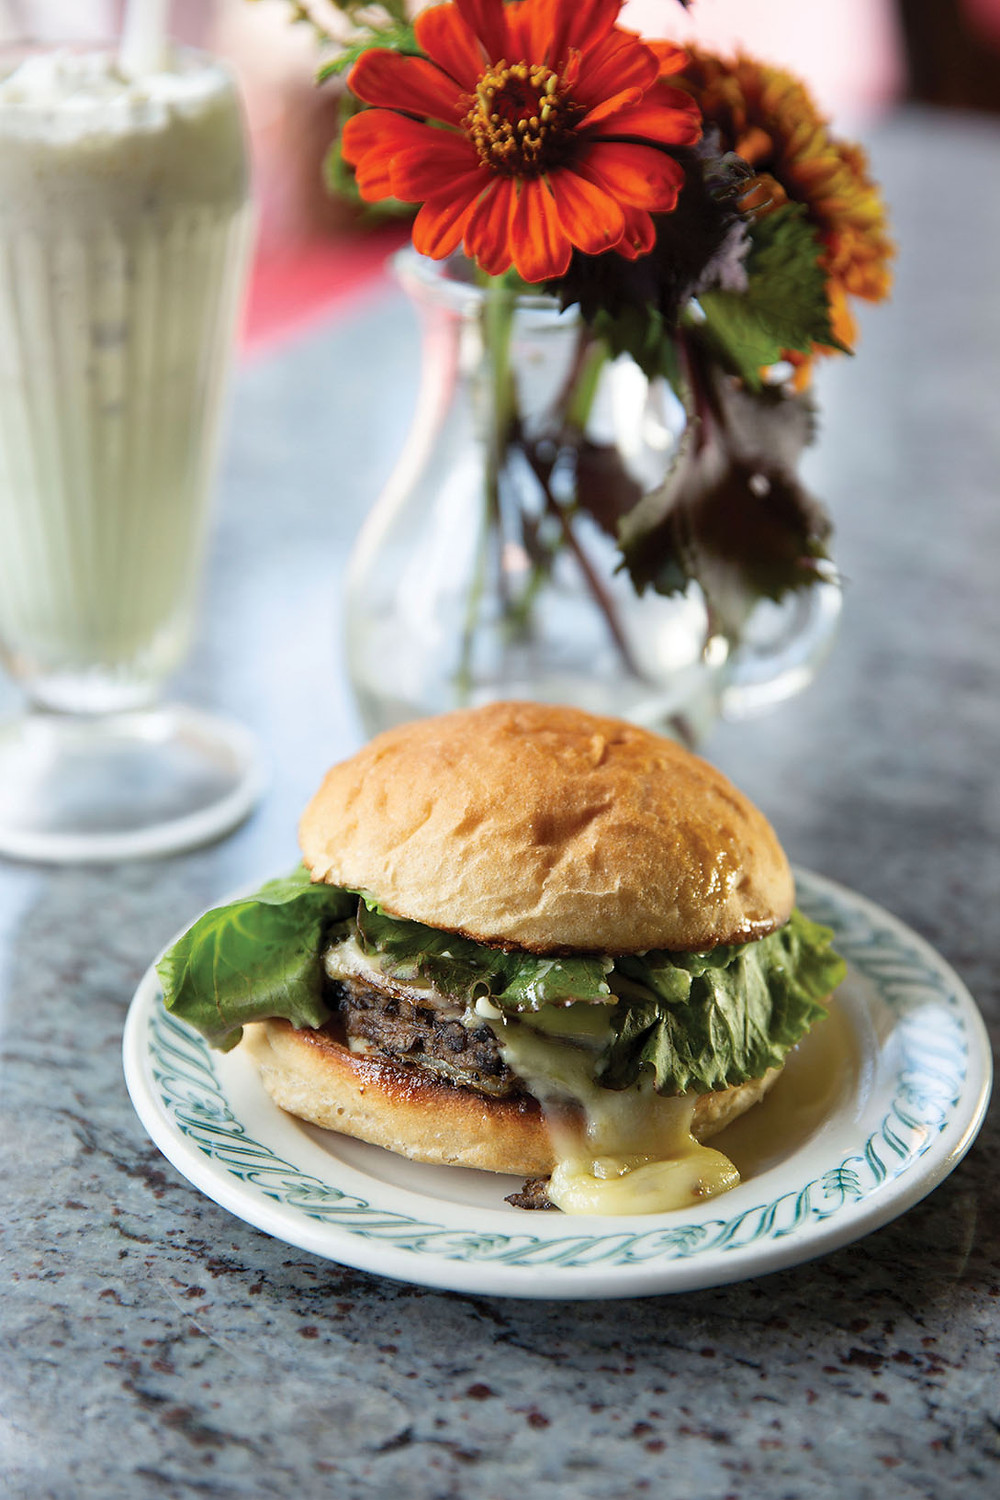 A burger with leafy greens, melty cheese, and a homemade bun on a plate with a mint shake and a vase of wild flowers setting behind it.